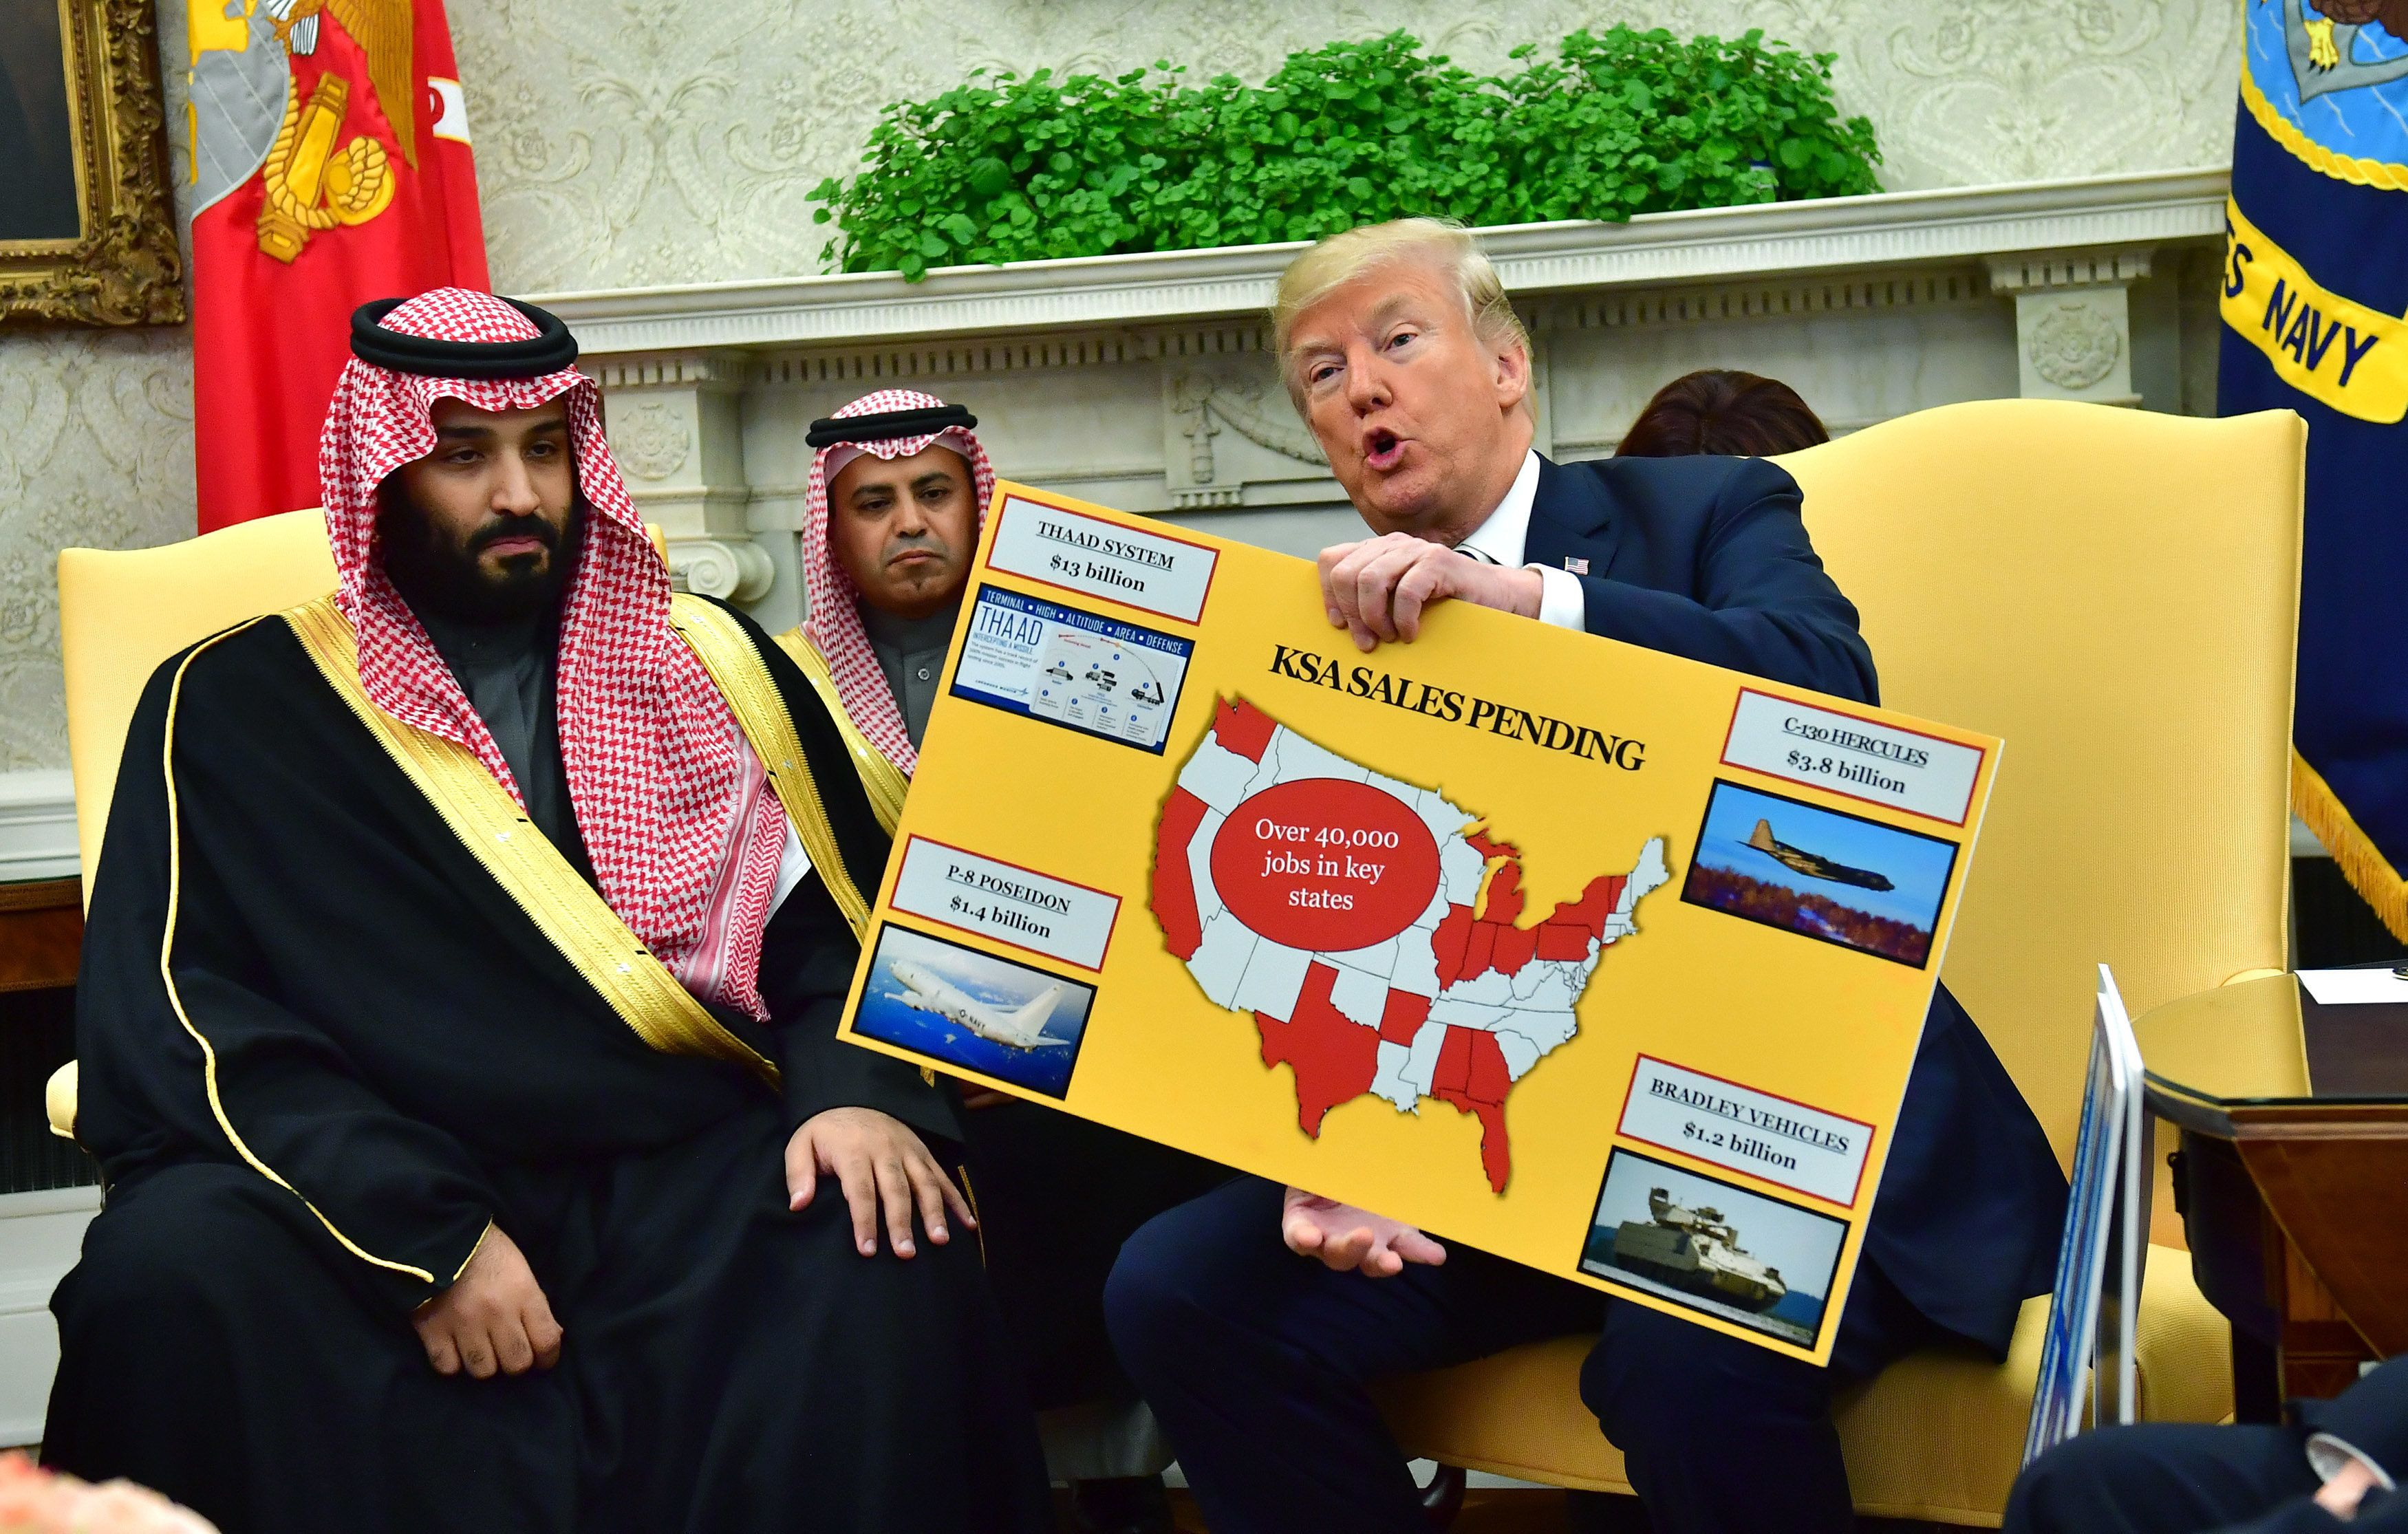 WASHINGTON, DC - MARCH 20: President Donald Trump (R) holds up a chart of military hardware sales as he meets with Crown Prince Mohammed bin Salman of the Kingdom of Saudi Arabia in the Oval Office at the White House on March 20, 2018 in Washington, D.C.  (Photo by Kevin Dietsch-Pool/Getty Images)